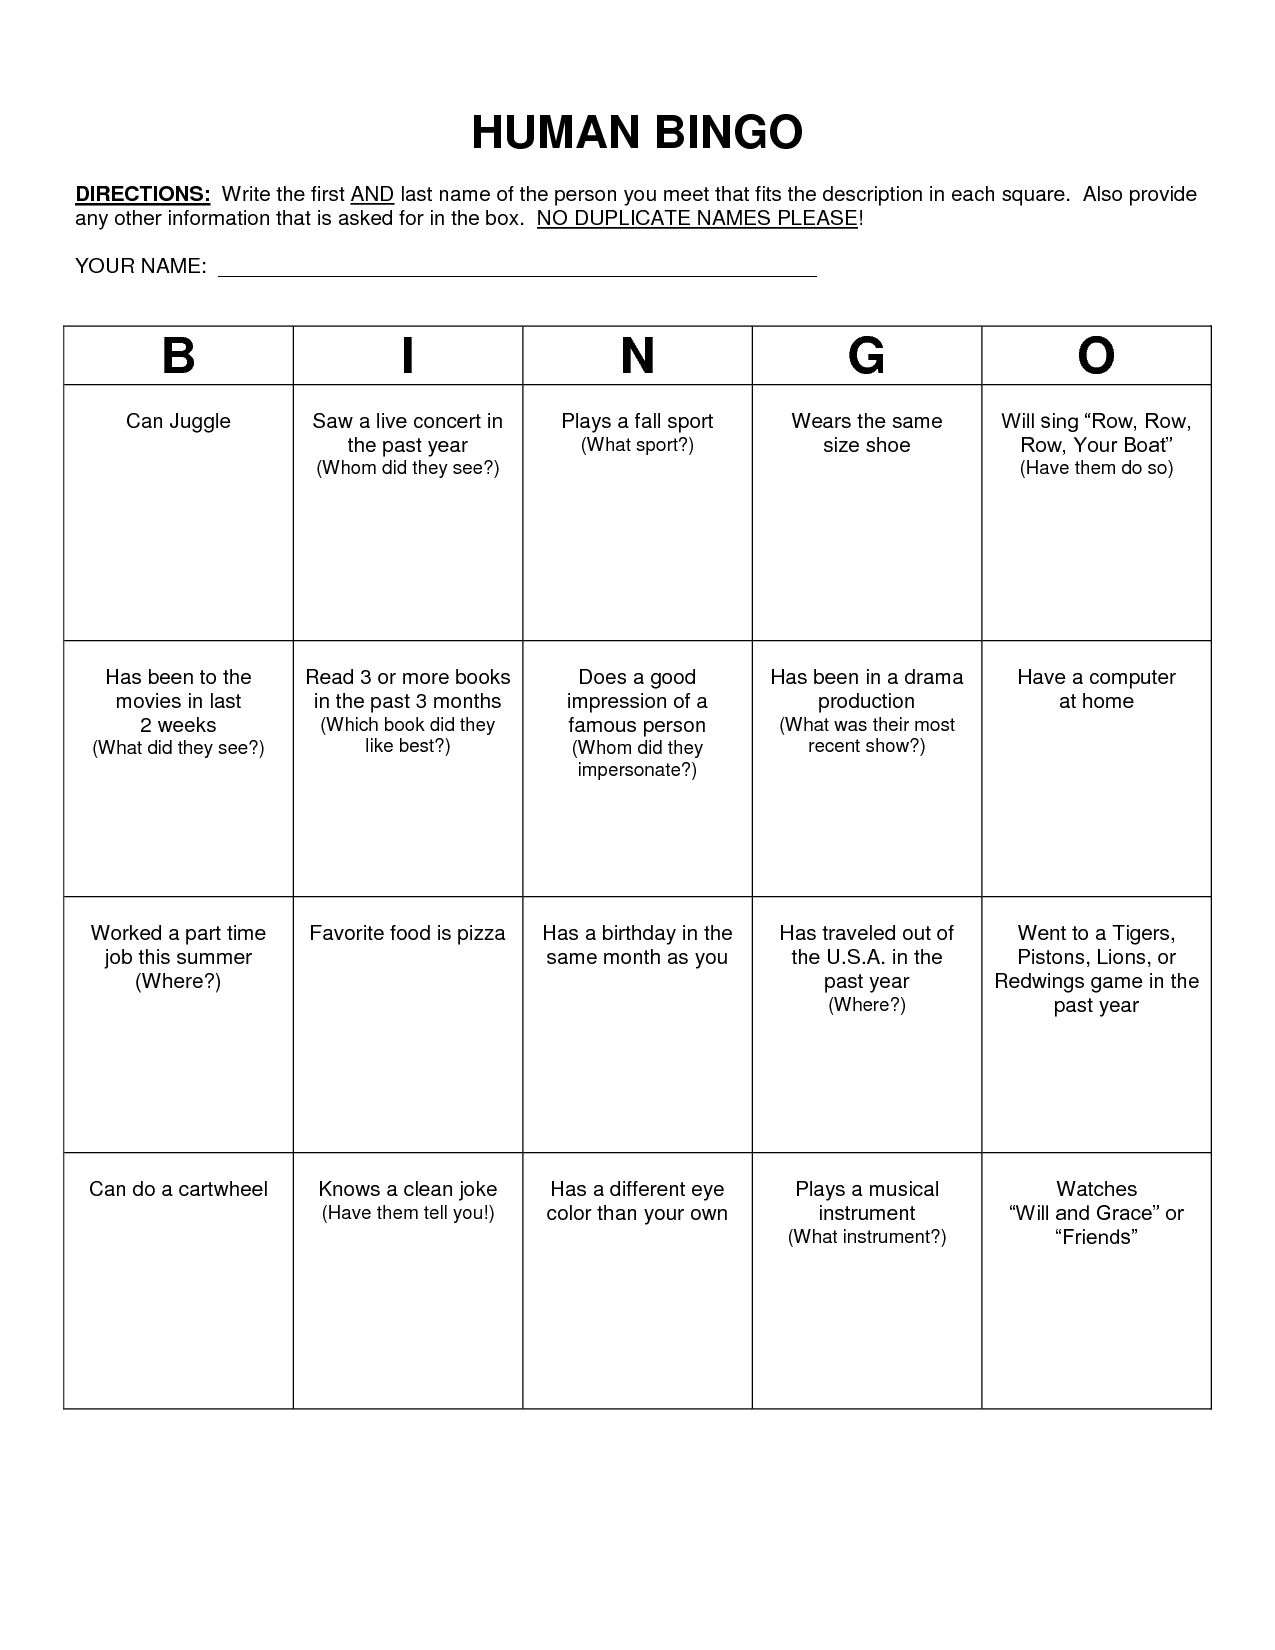 human bingo scavenger hunt template classroom pinterest human bingo template and youth. Black Bedroom Furniture Sets. Home Design Ideas